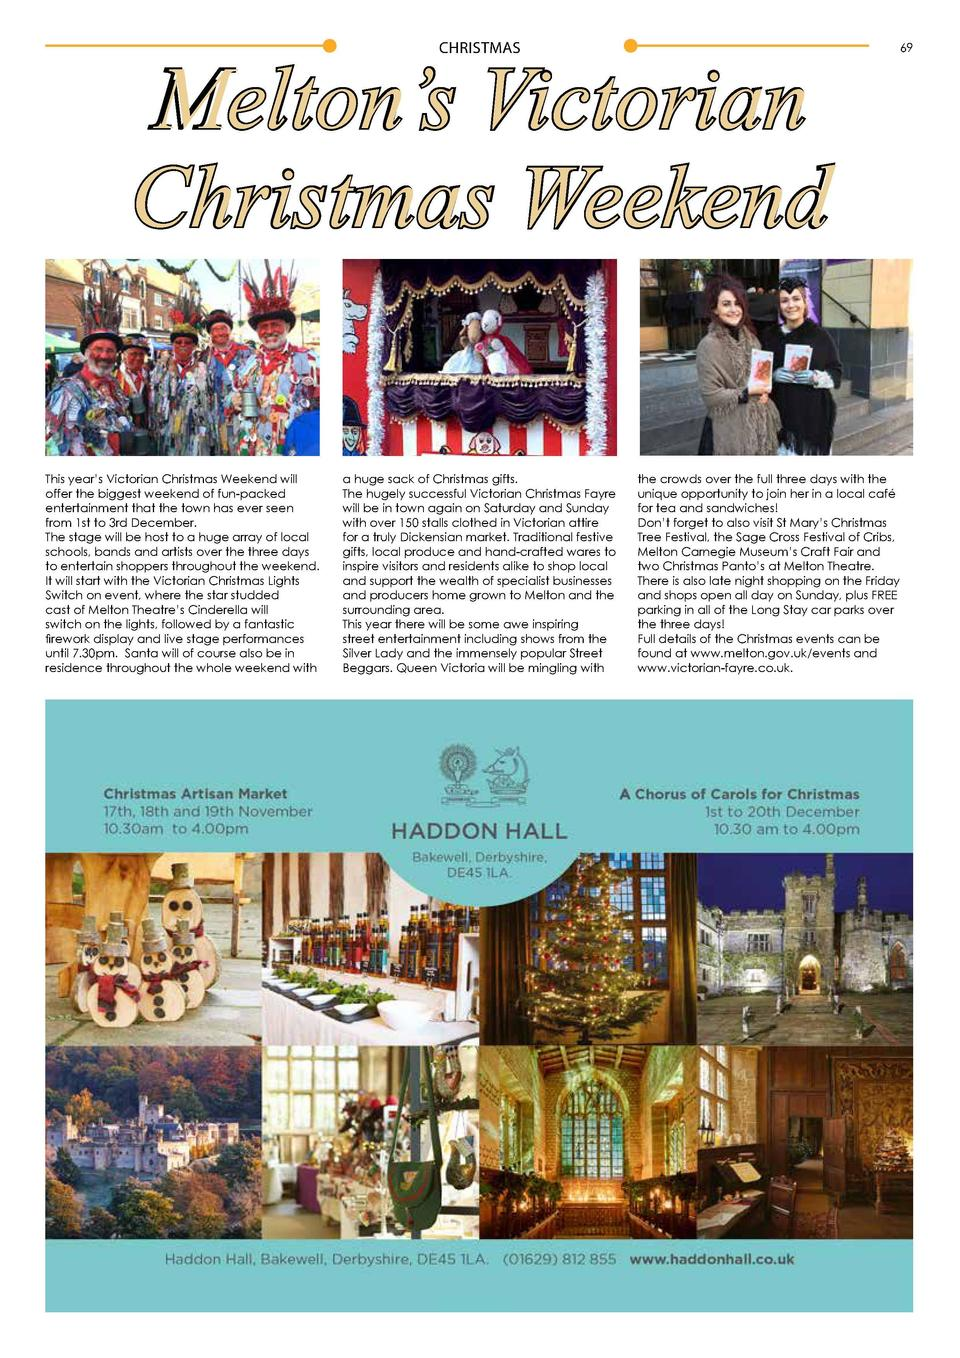 68  CHRISTMAS  Melton   s Victorian Christmas Weekend CHRISTMAS  This year   s Victorian Christmas Weekend will offer the ...